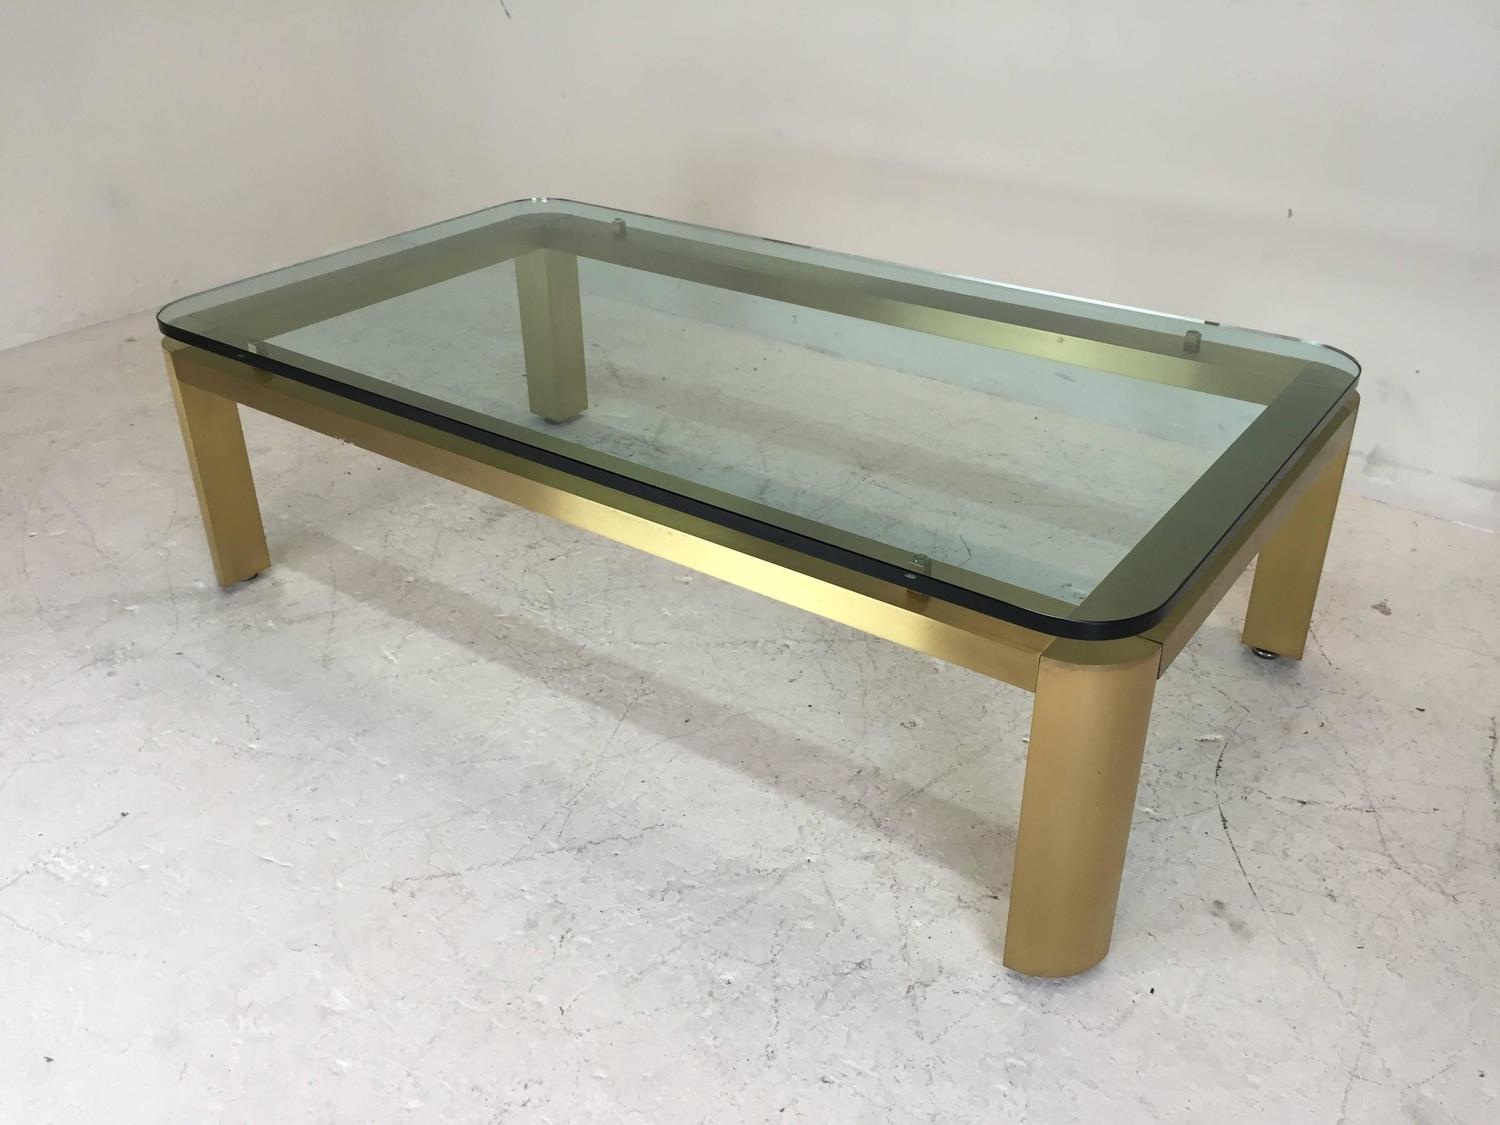 stylish 1970s brushed brass coffee table with round corners for sale at 1stdibs. Black Bedroom Furniture Sets. Home Design Ideas